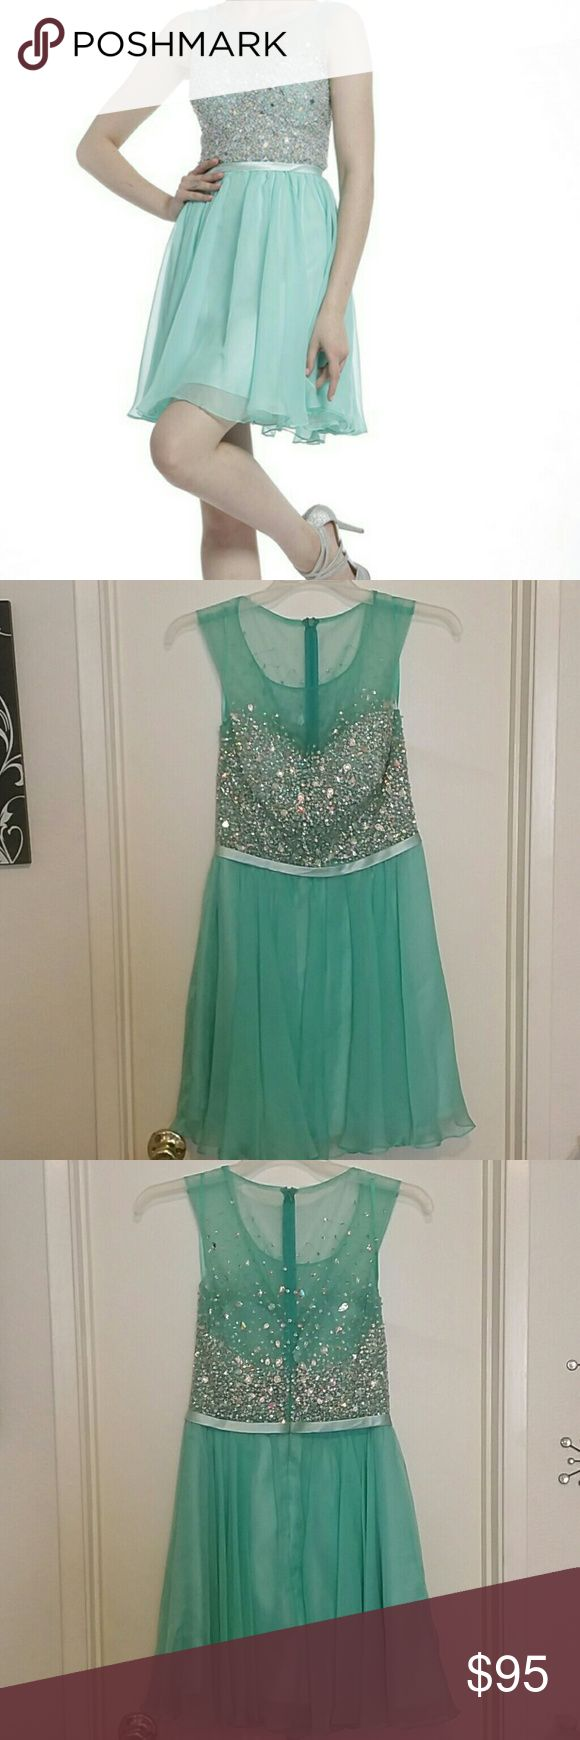 Mint formal dress Short mint dress with rhinestones. Wore once as a bridesmaid dress can also be used for prom or any special occasion. In perfect condition! Includes scarf! Please see images for waist and skirt measurements! Cinderella Divine Dresses Prom